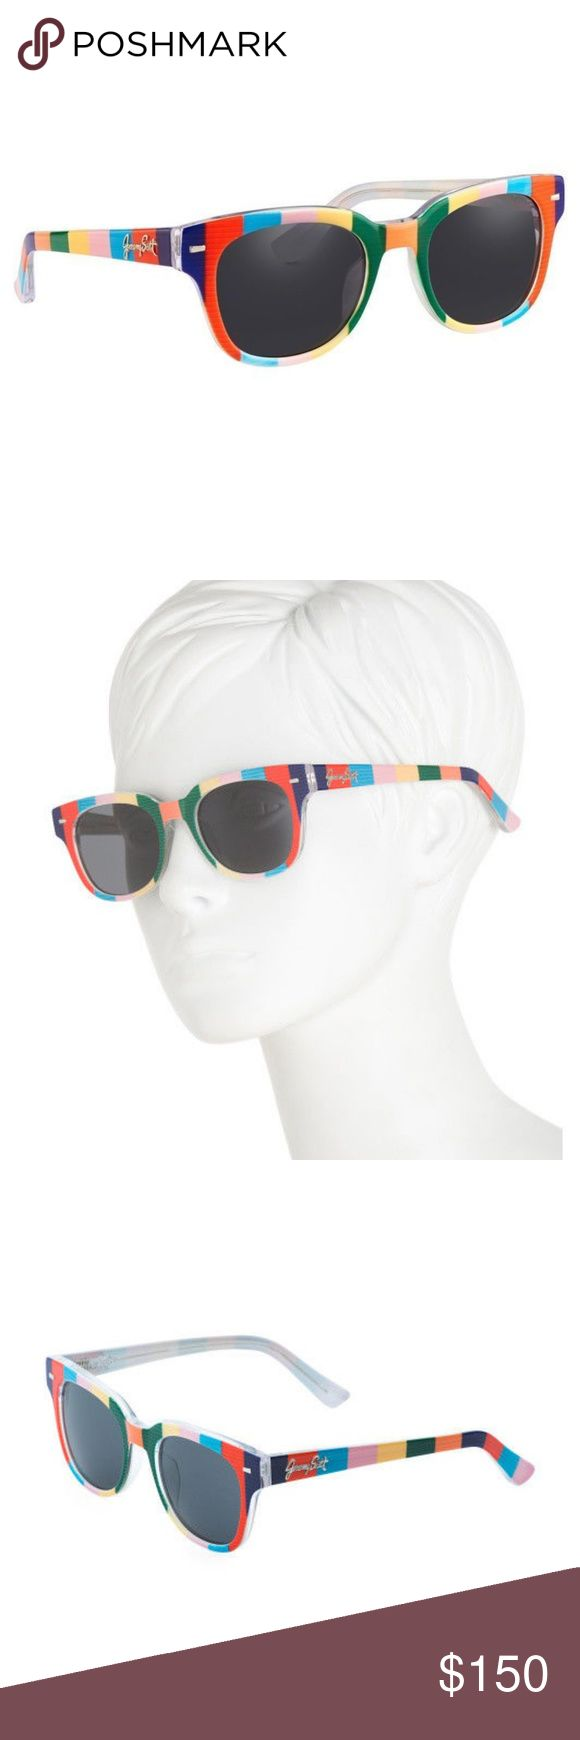 Jeremy Scott Striped Sunglasses New & Case Jeremy Scott Linda Farrow Striped Multi Color Novelty Sunglasses NEW & Case  Never taken out of packaging!  -Includes hard case, cleaning cloth, certificate card -Square, classic shape -Studded edges  Frame: acetate material  Lenses: grey toned, category 3 filter protection Jeremy Scott Accessories Sunglasses